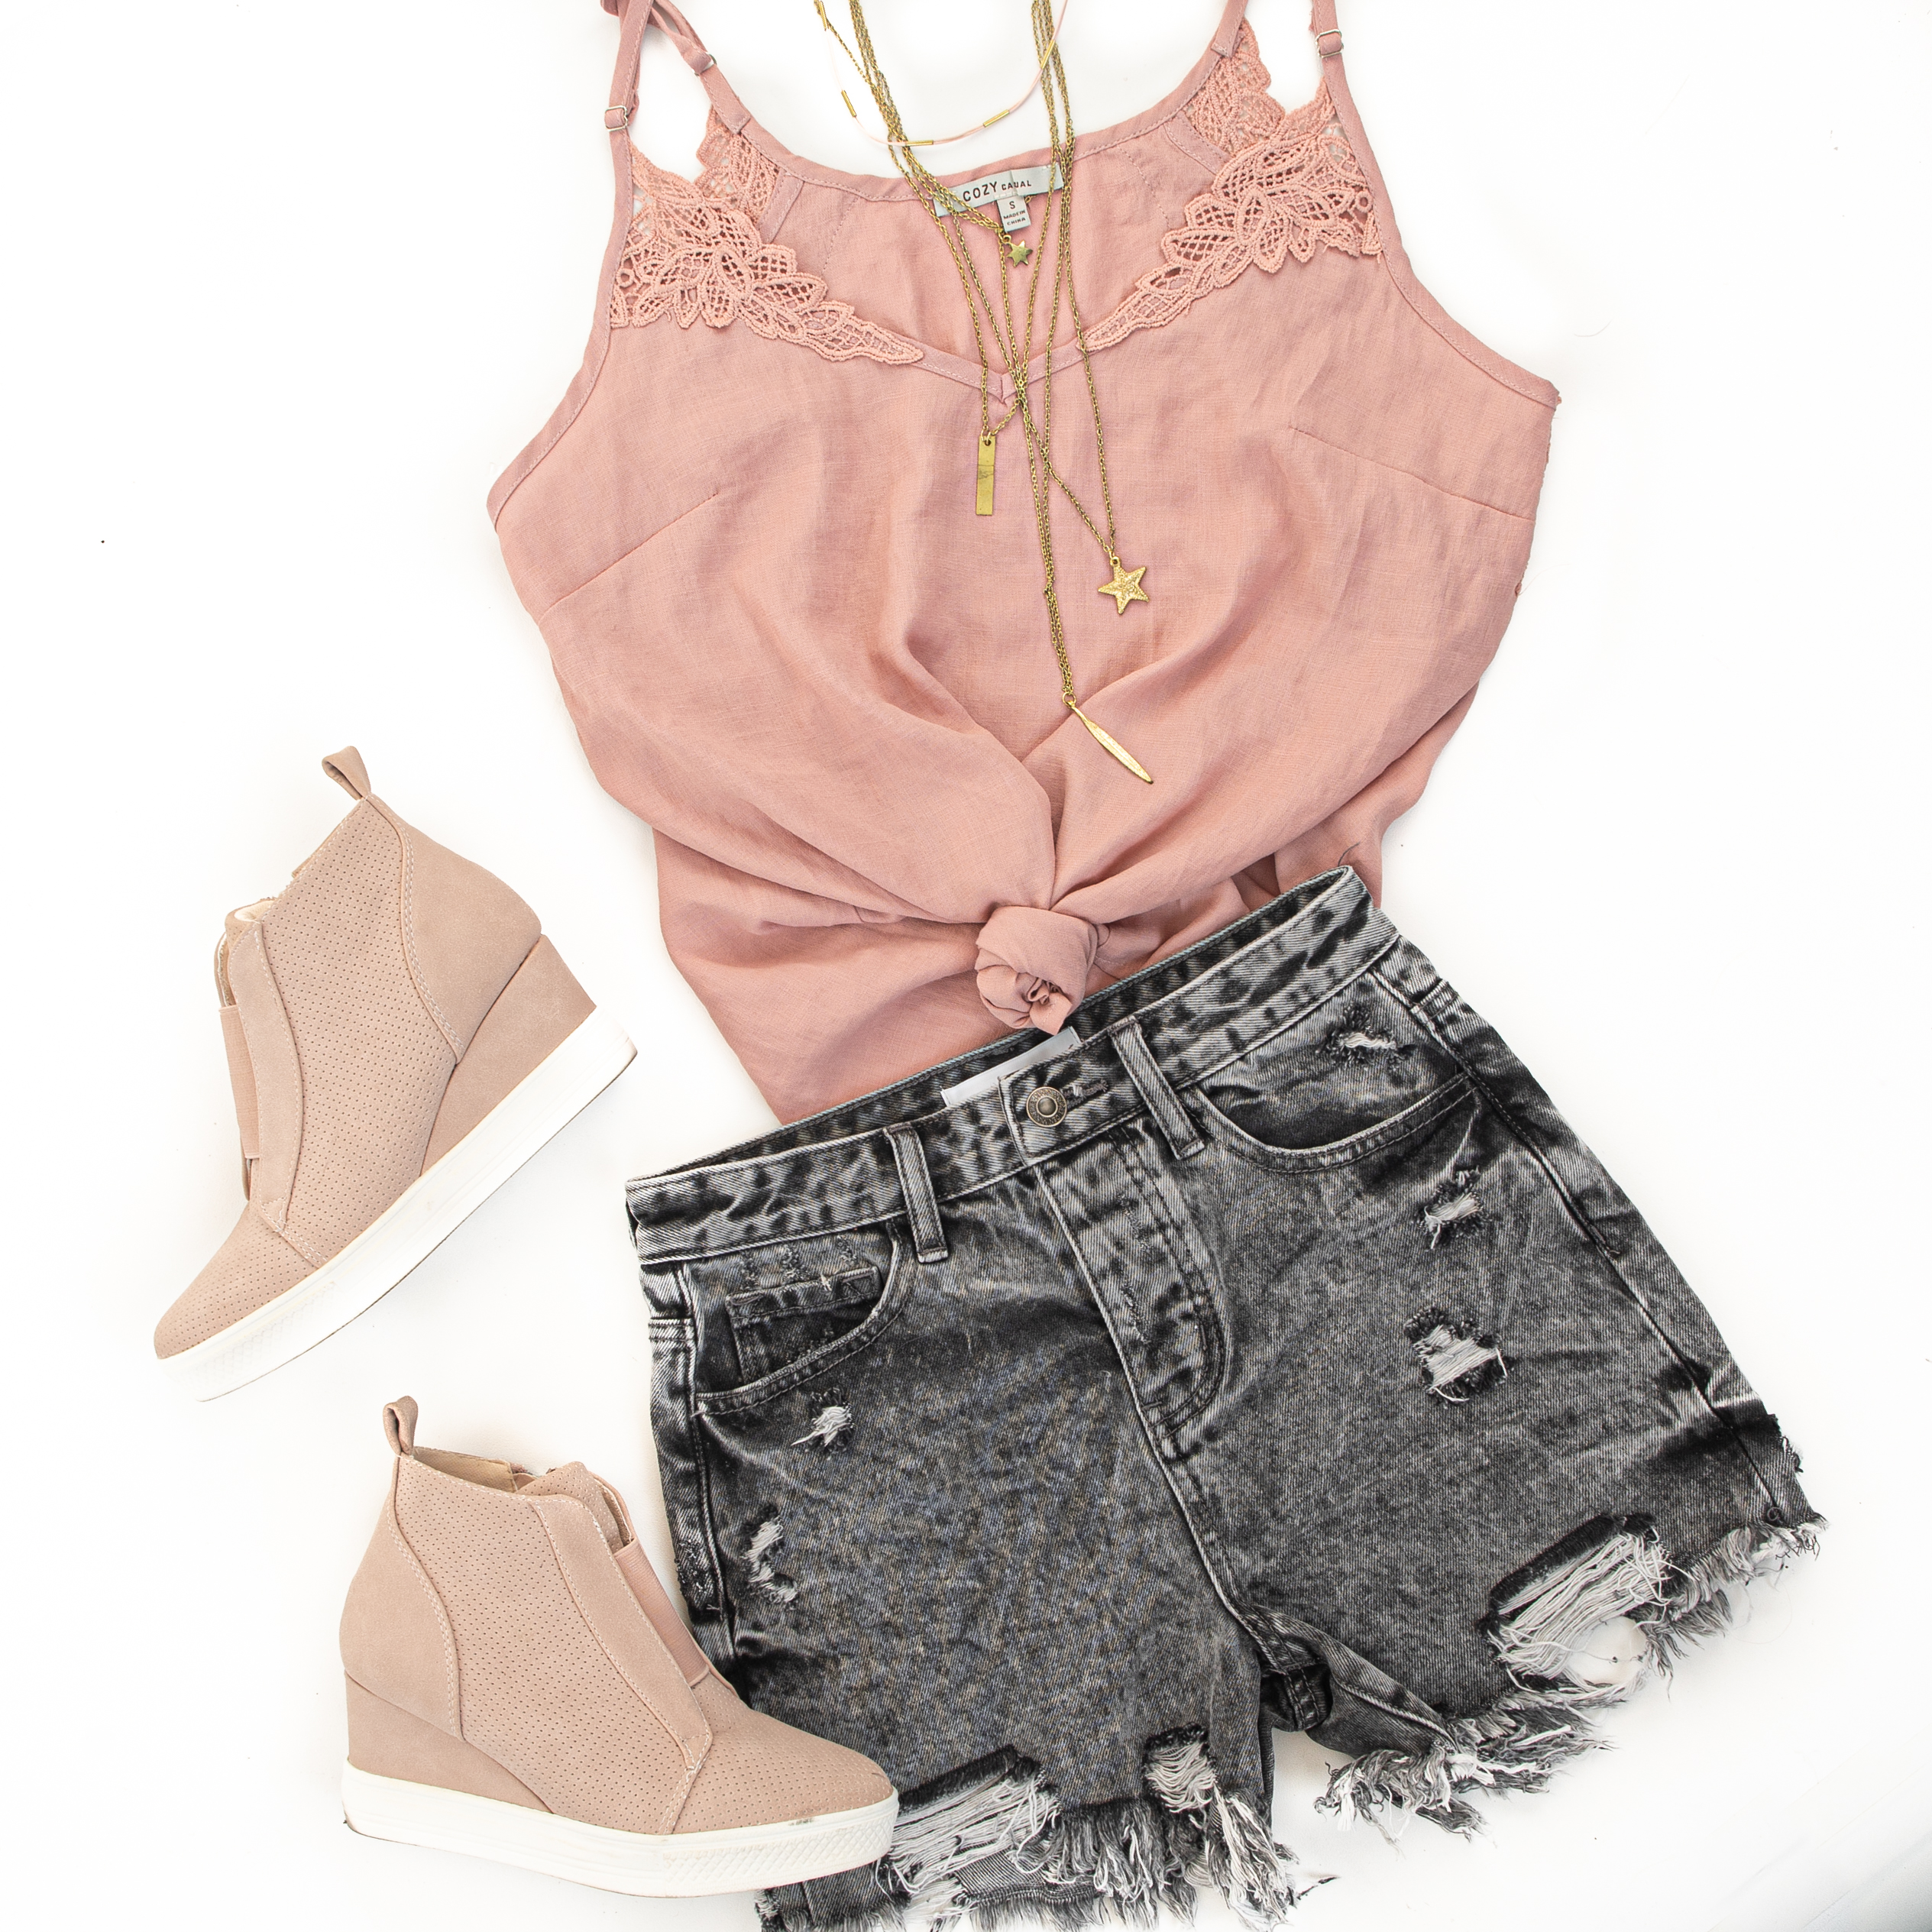 Dusty Rose Tank Top with Crochet Lace Details and V Neckline